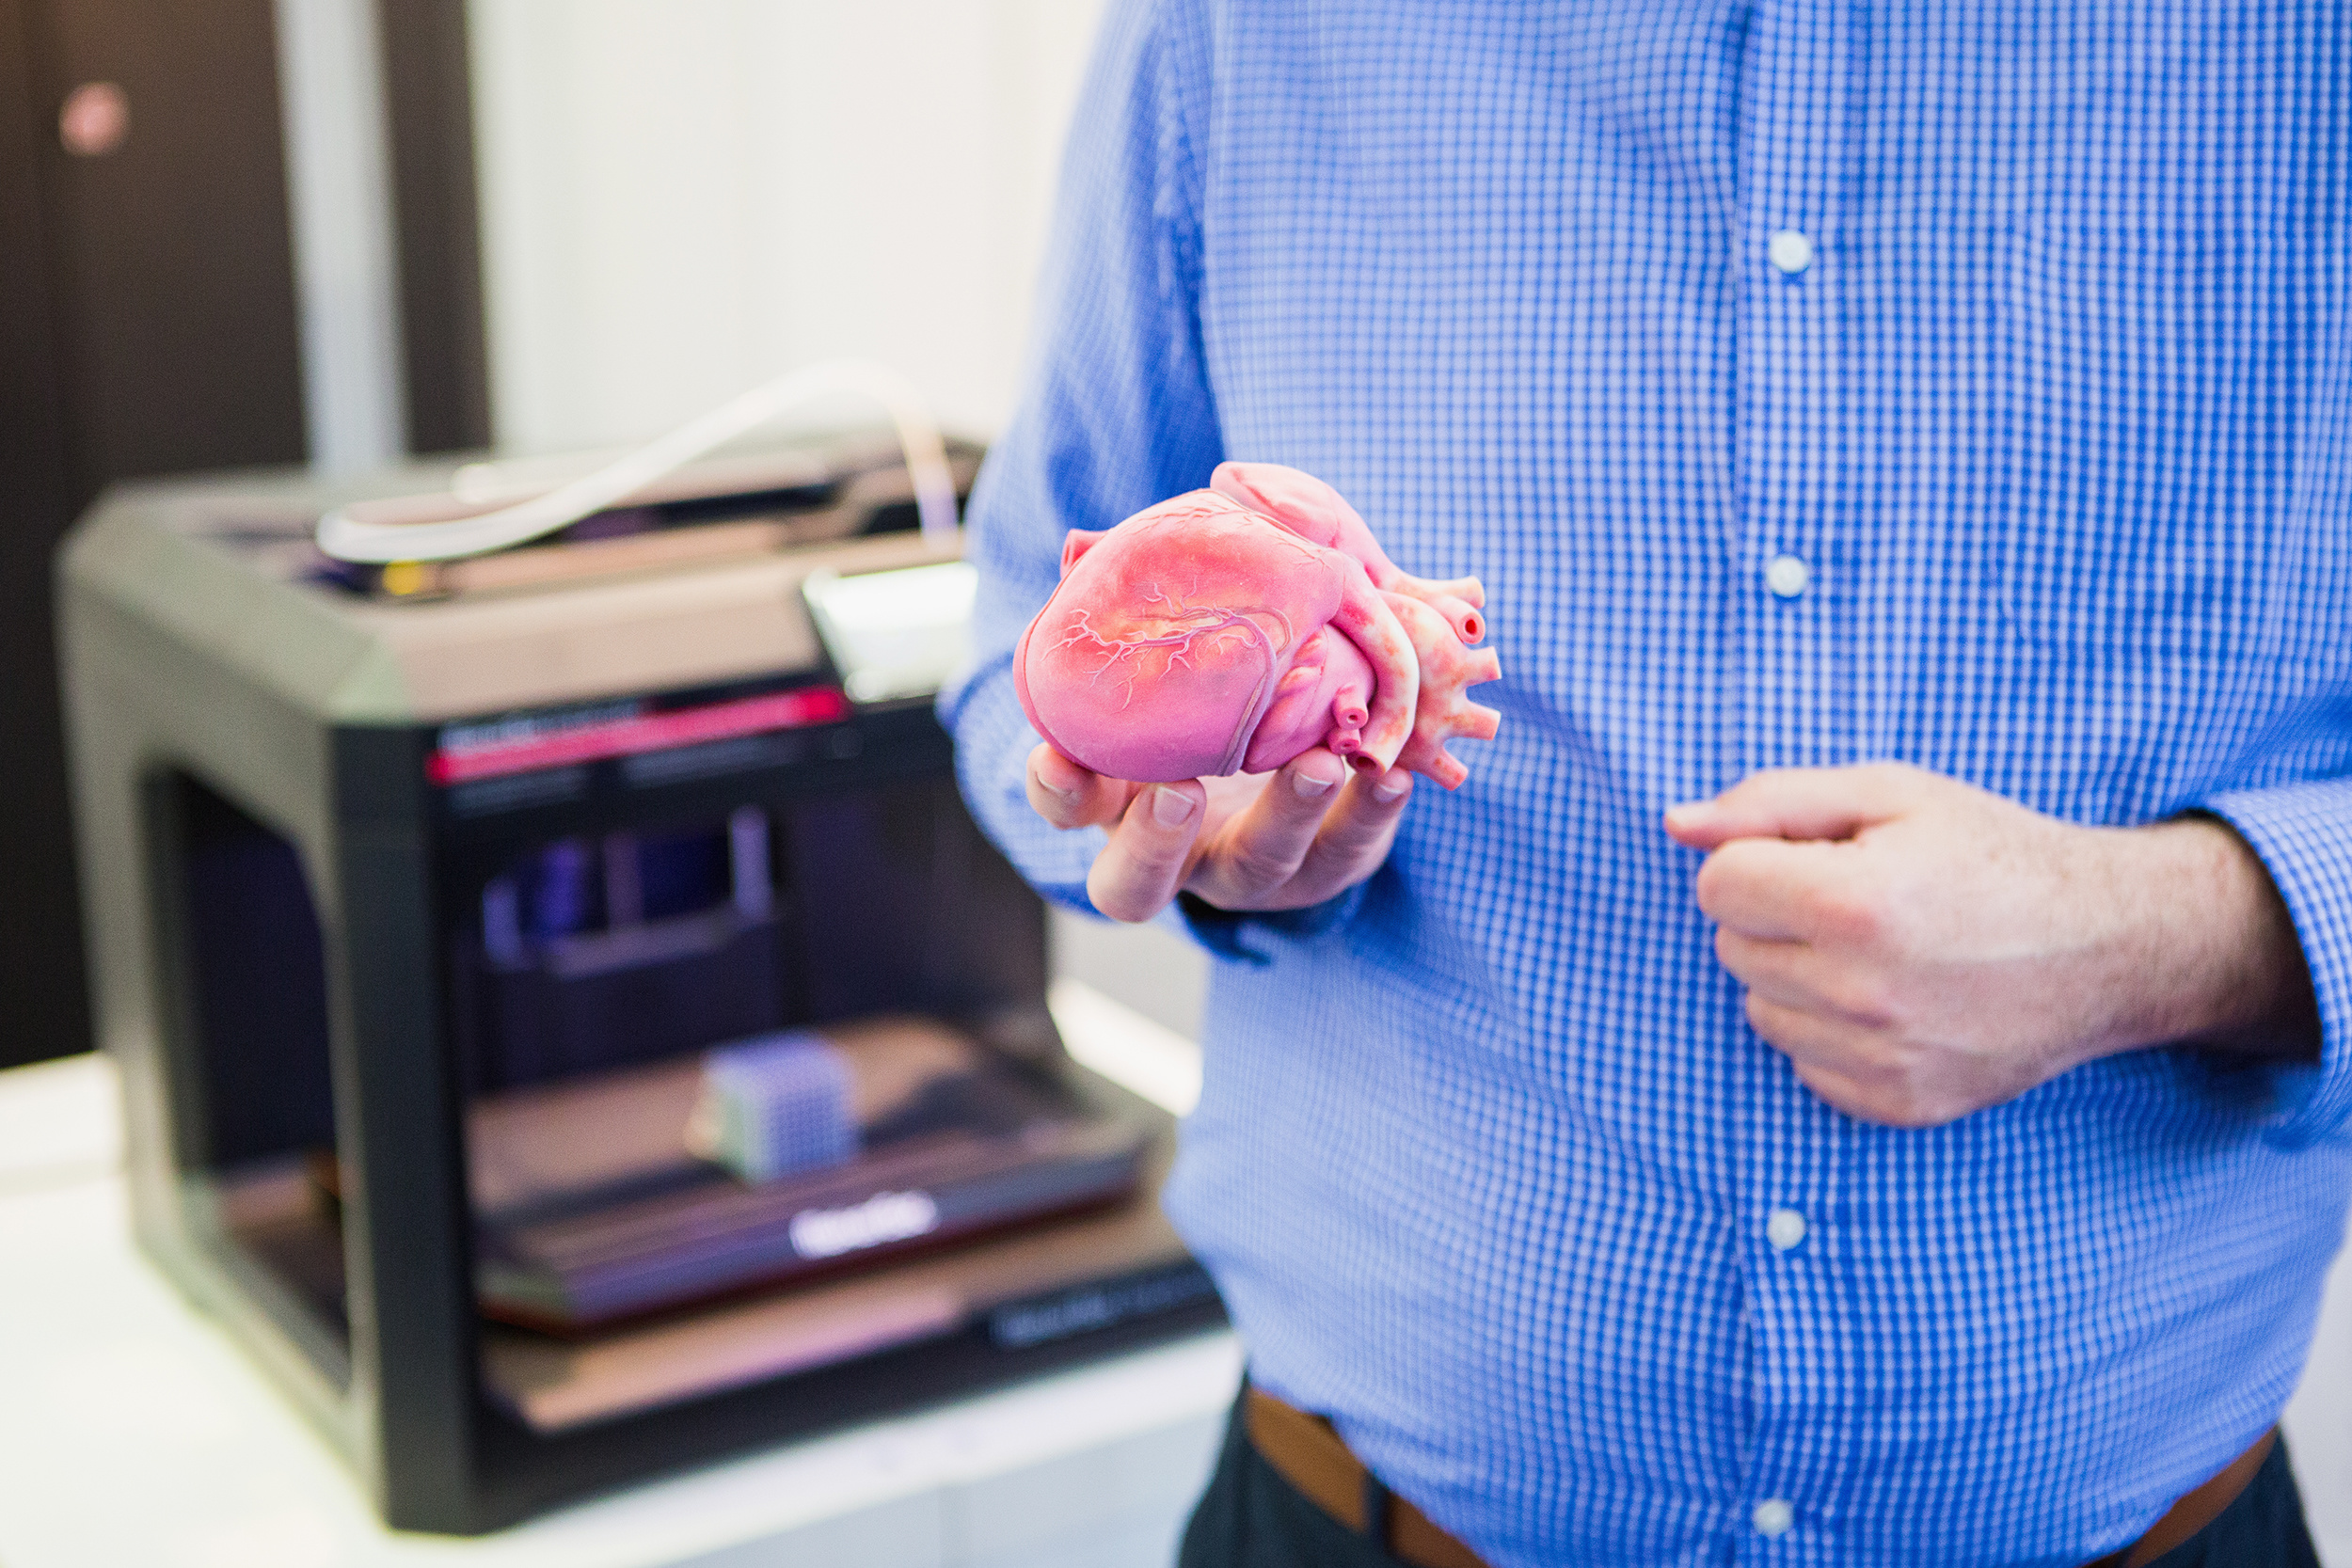 The engineer demonstrates the heart printed on a 3d printer